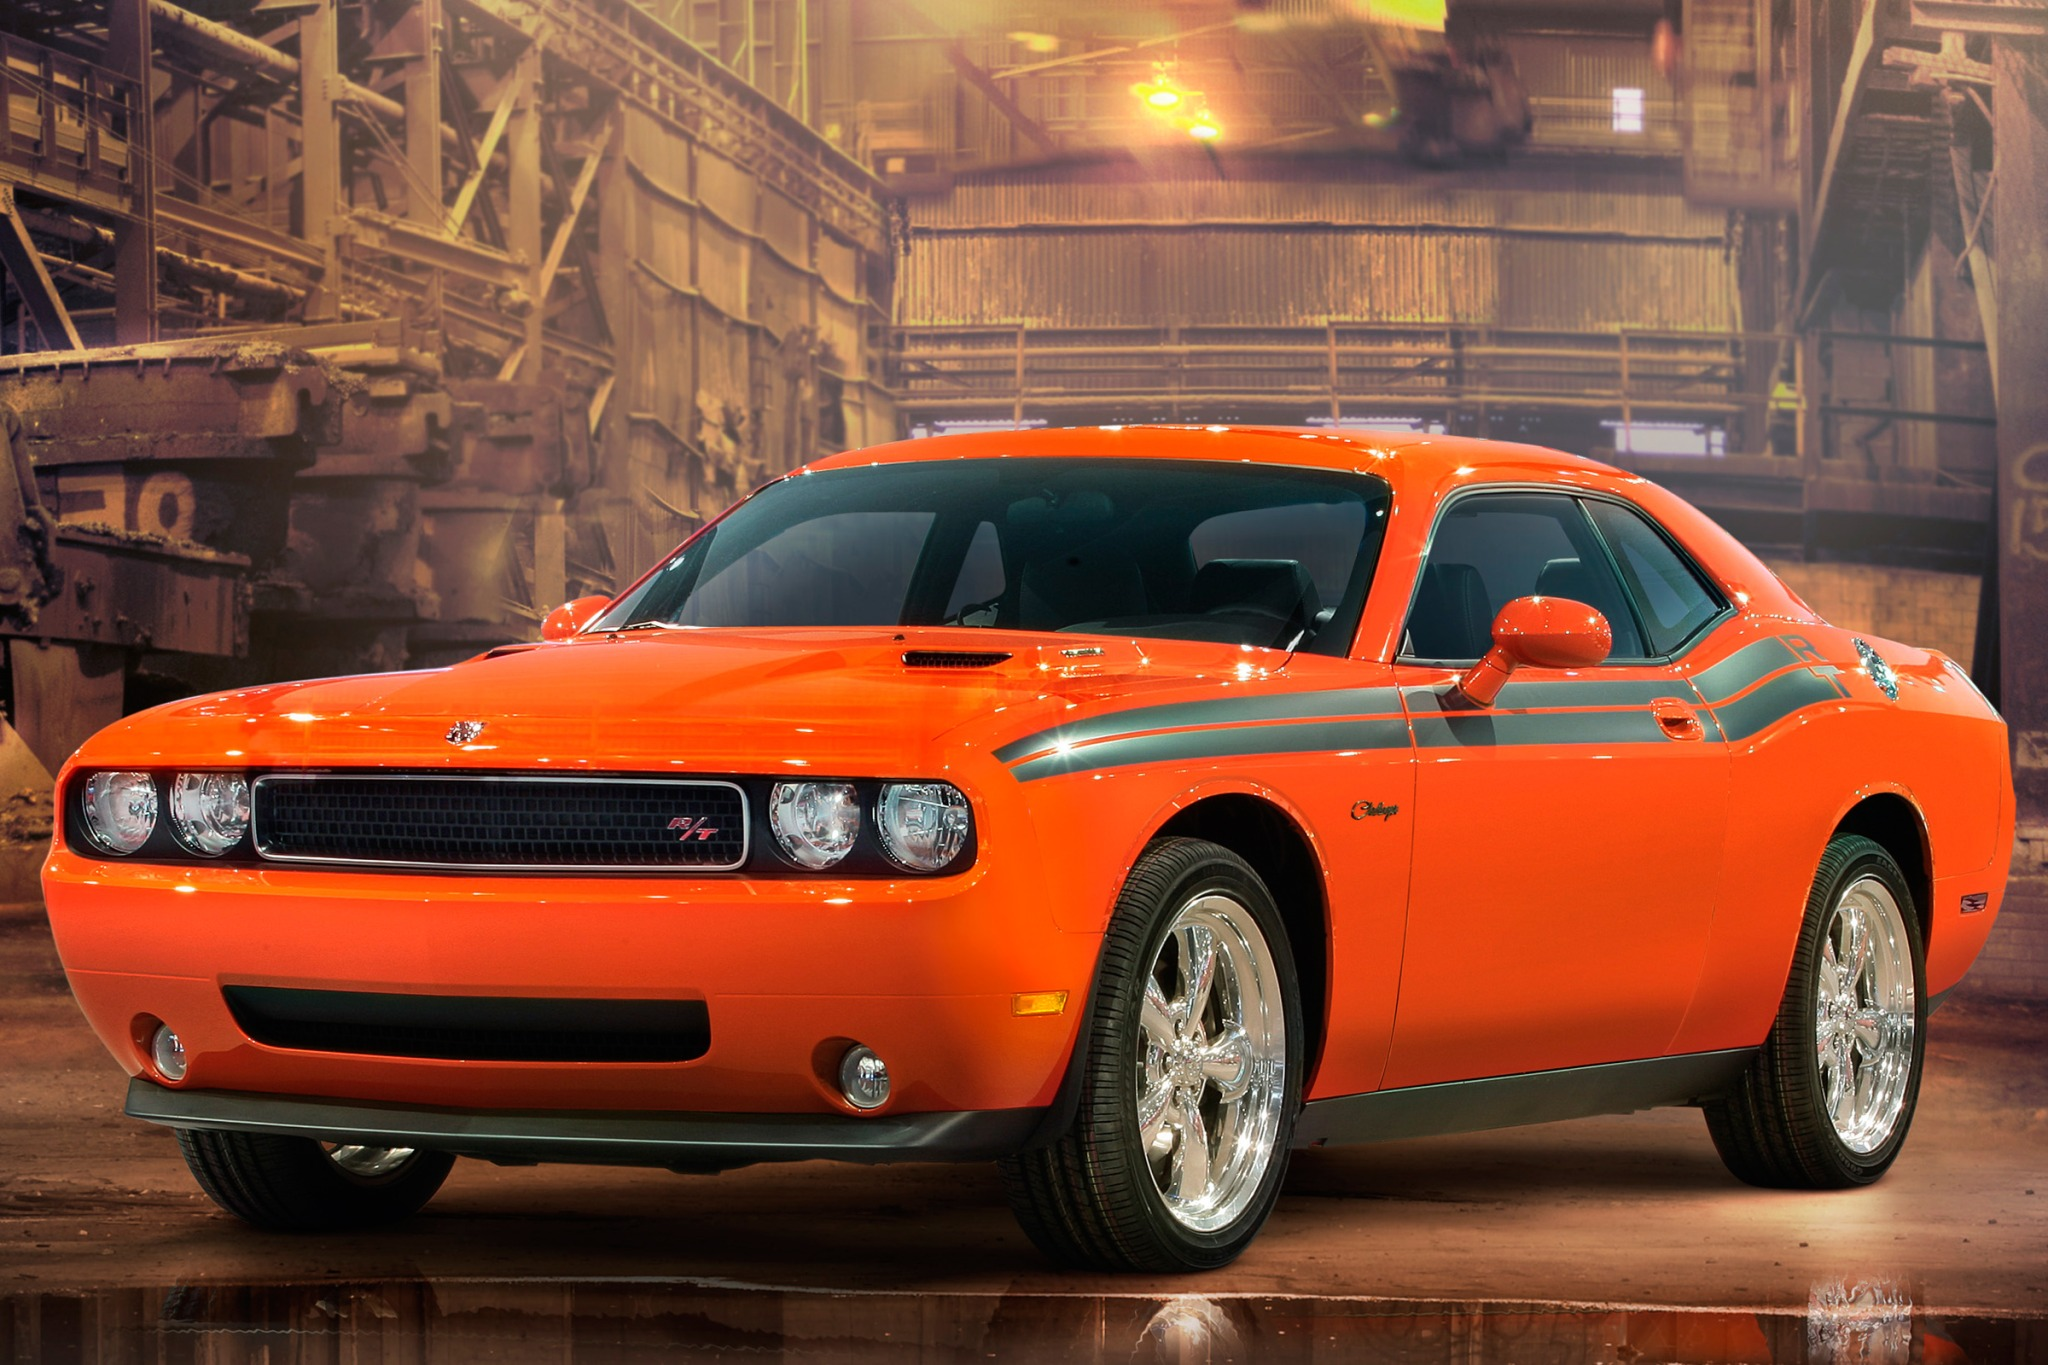 2010 Dodge Challenger SRT interior #2